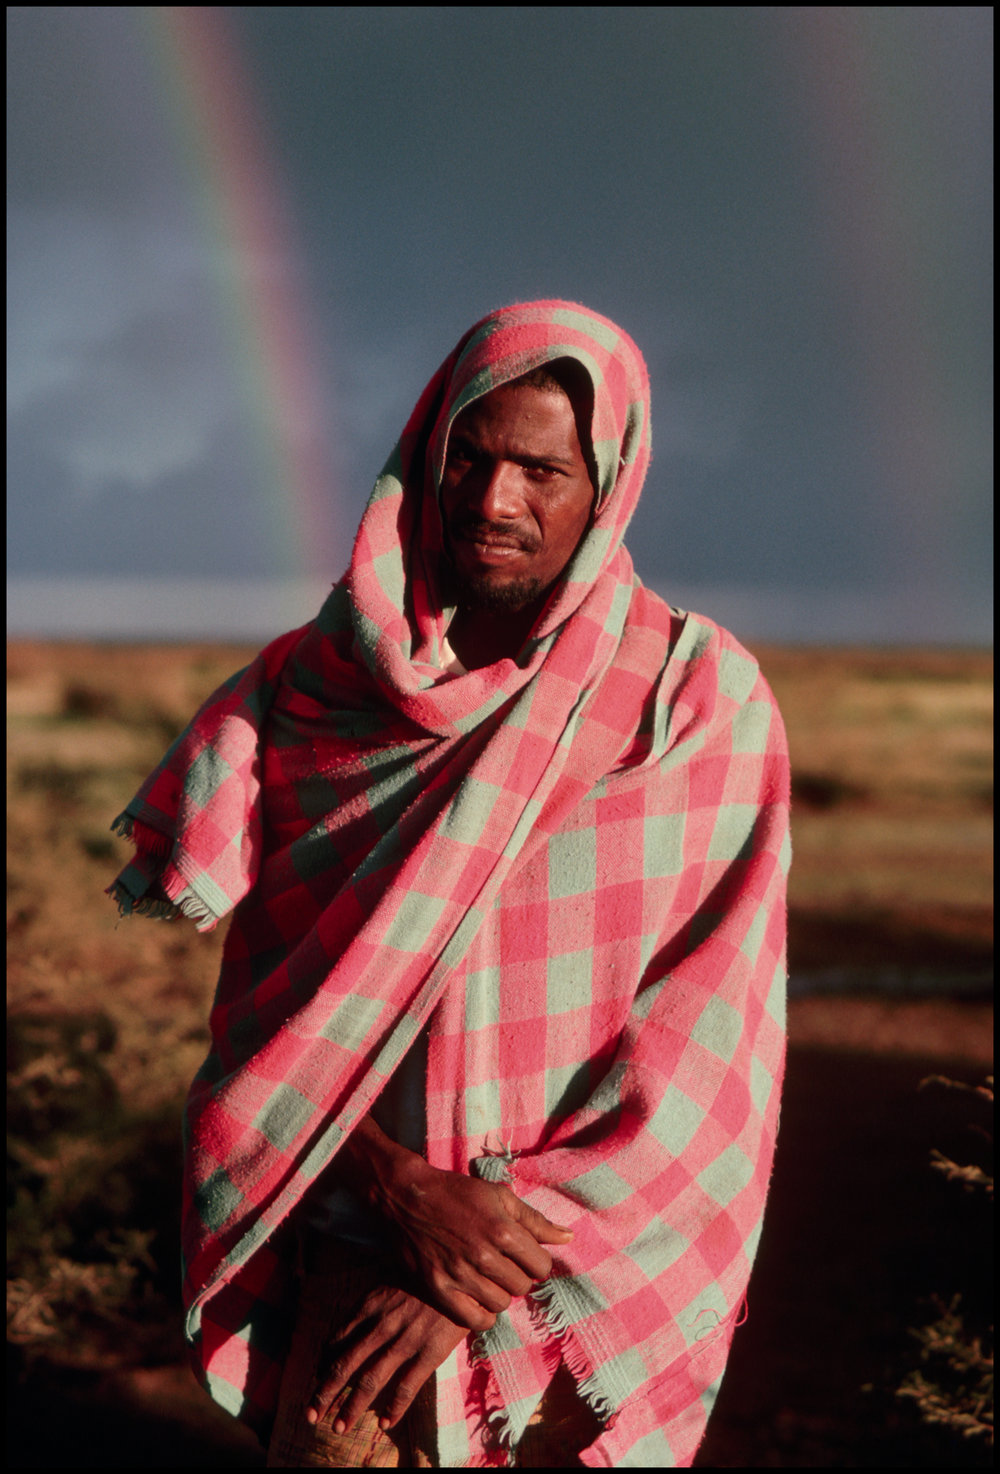 1988, Somalia --- Refugee Posing in Front of Rainbow